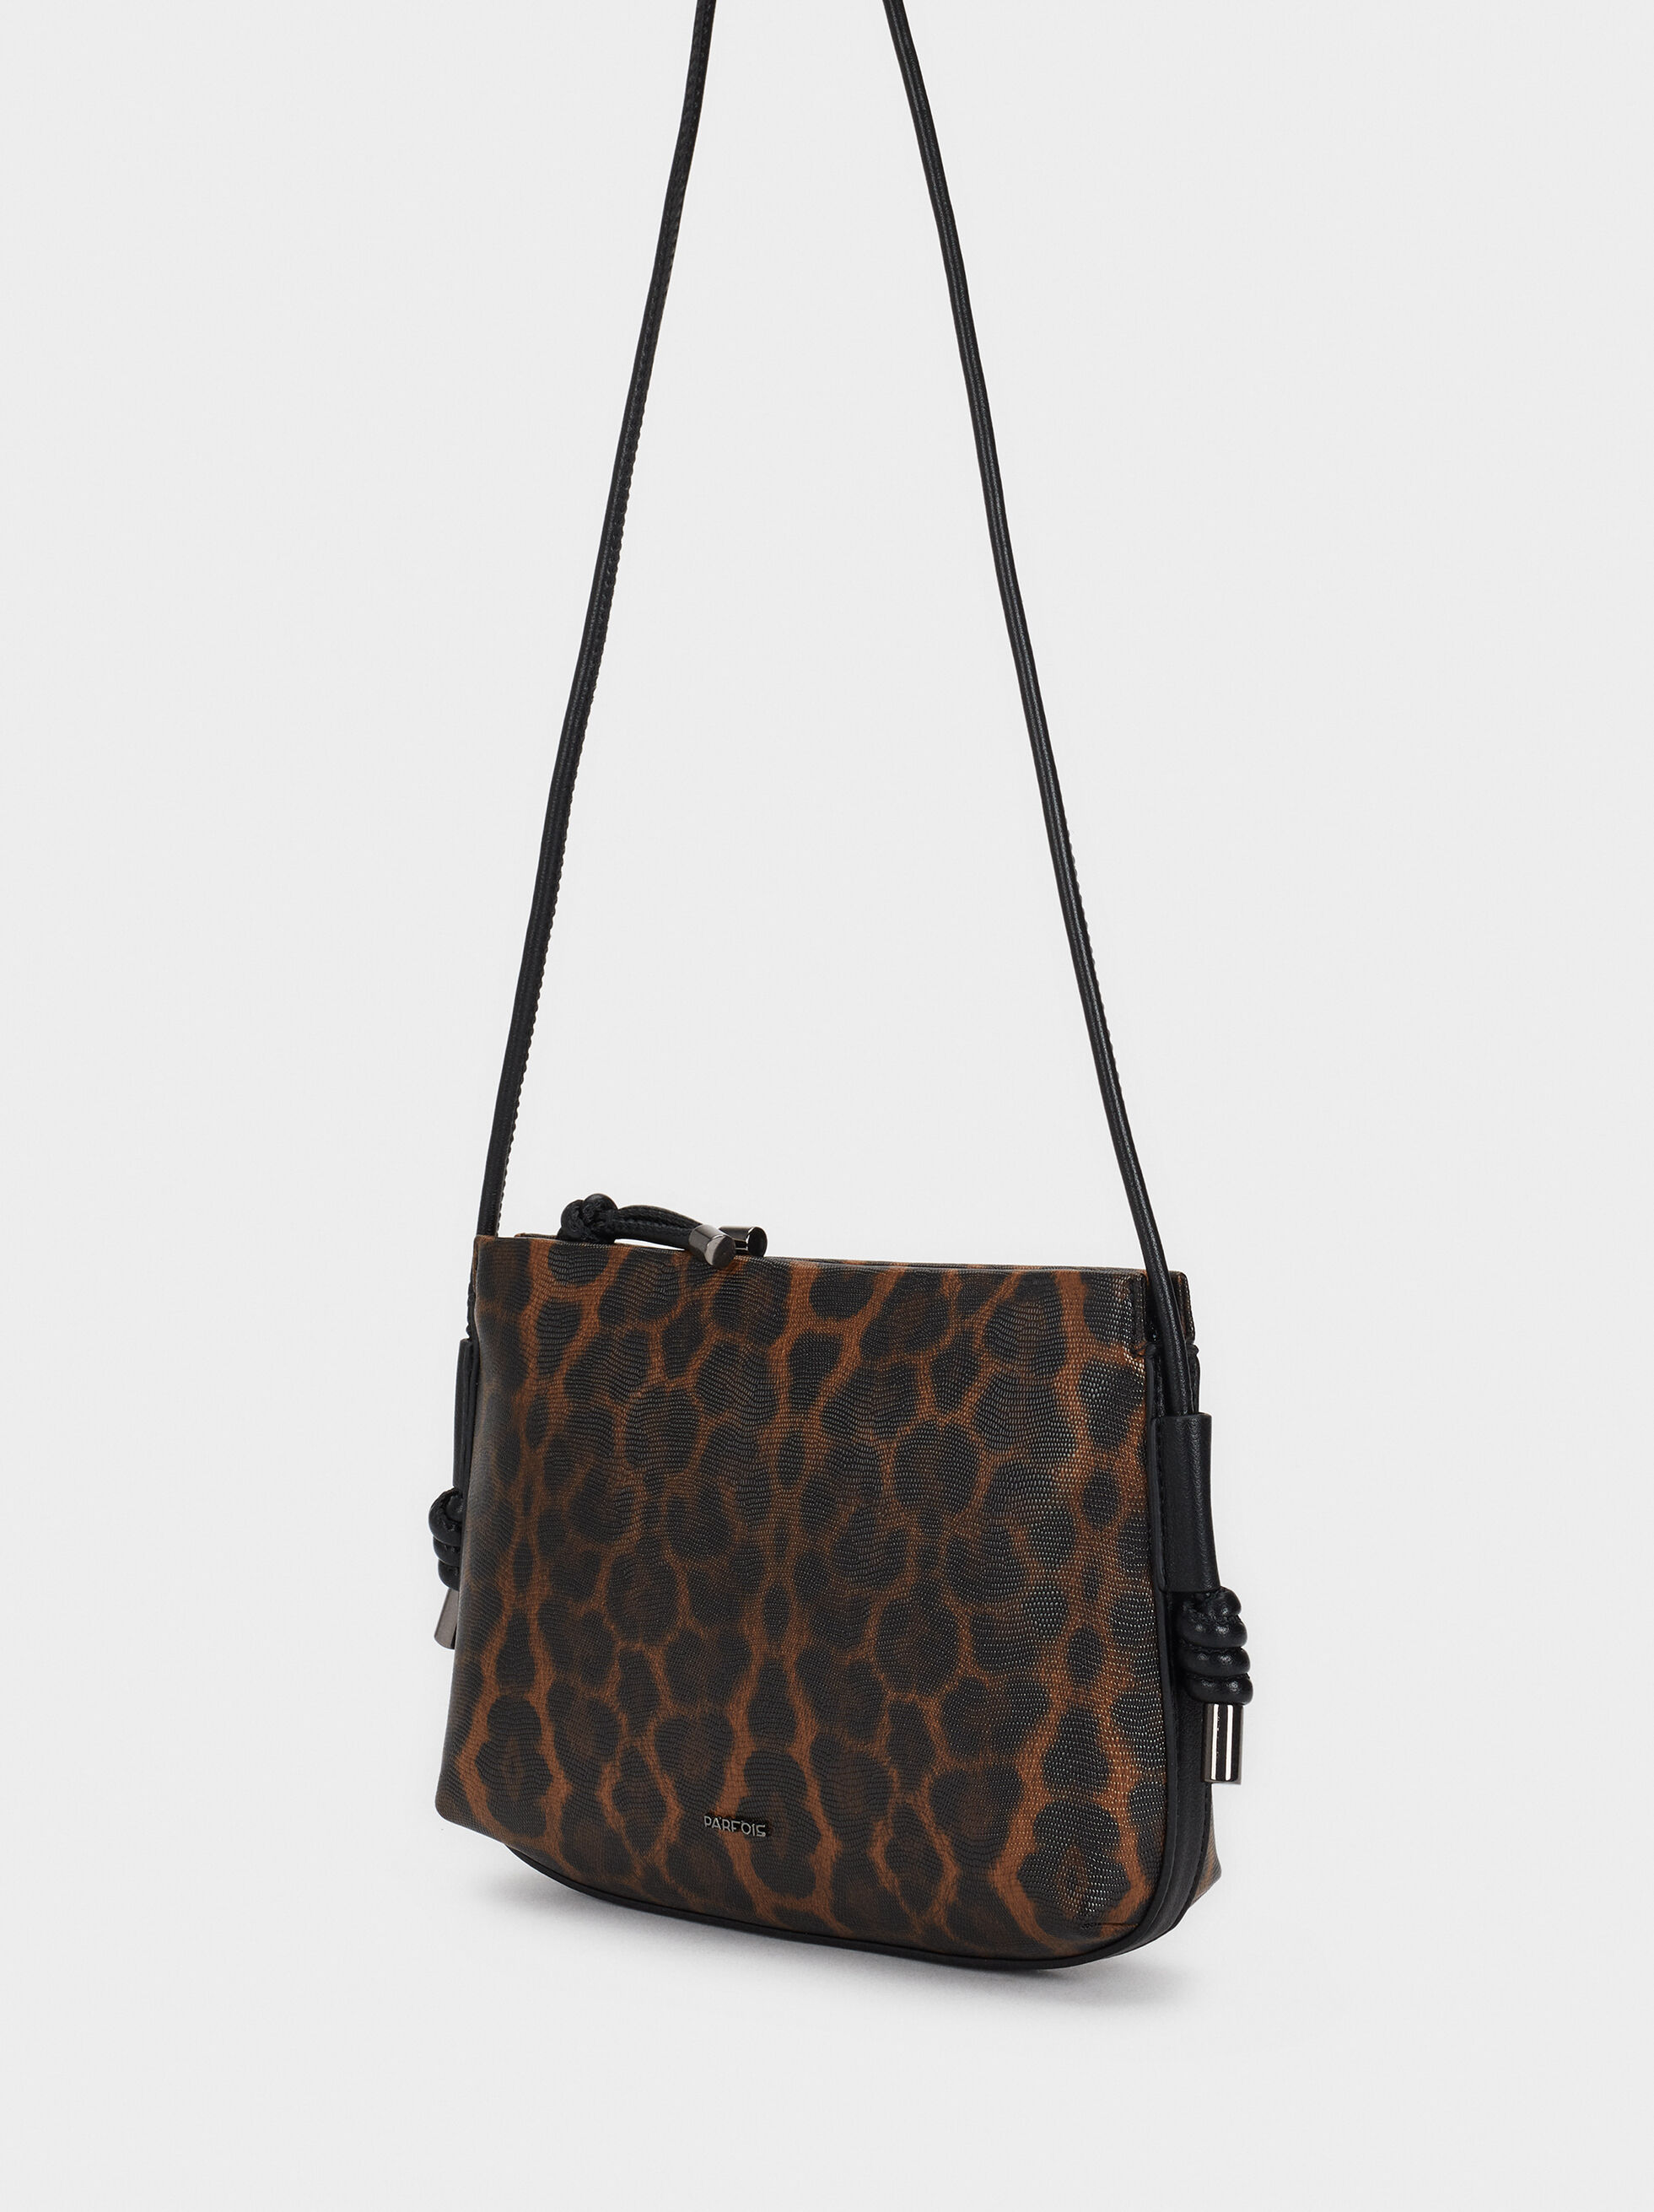 Jelly Cross Bag, Black, hi-res